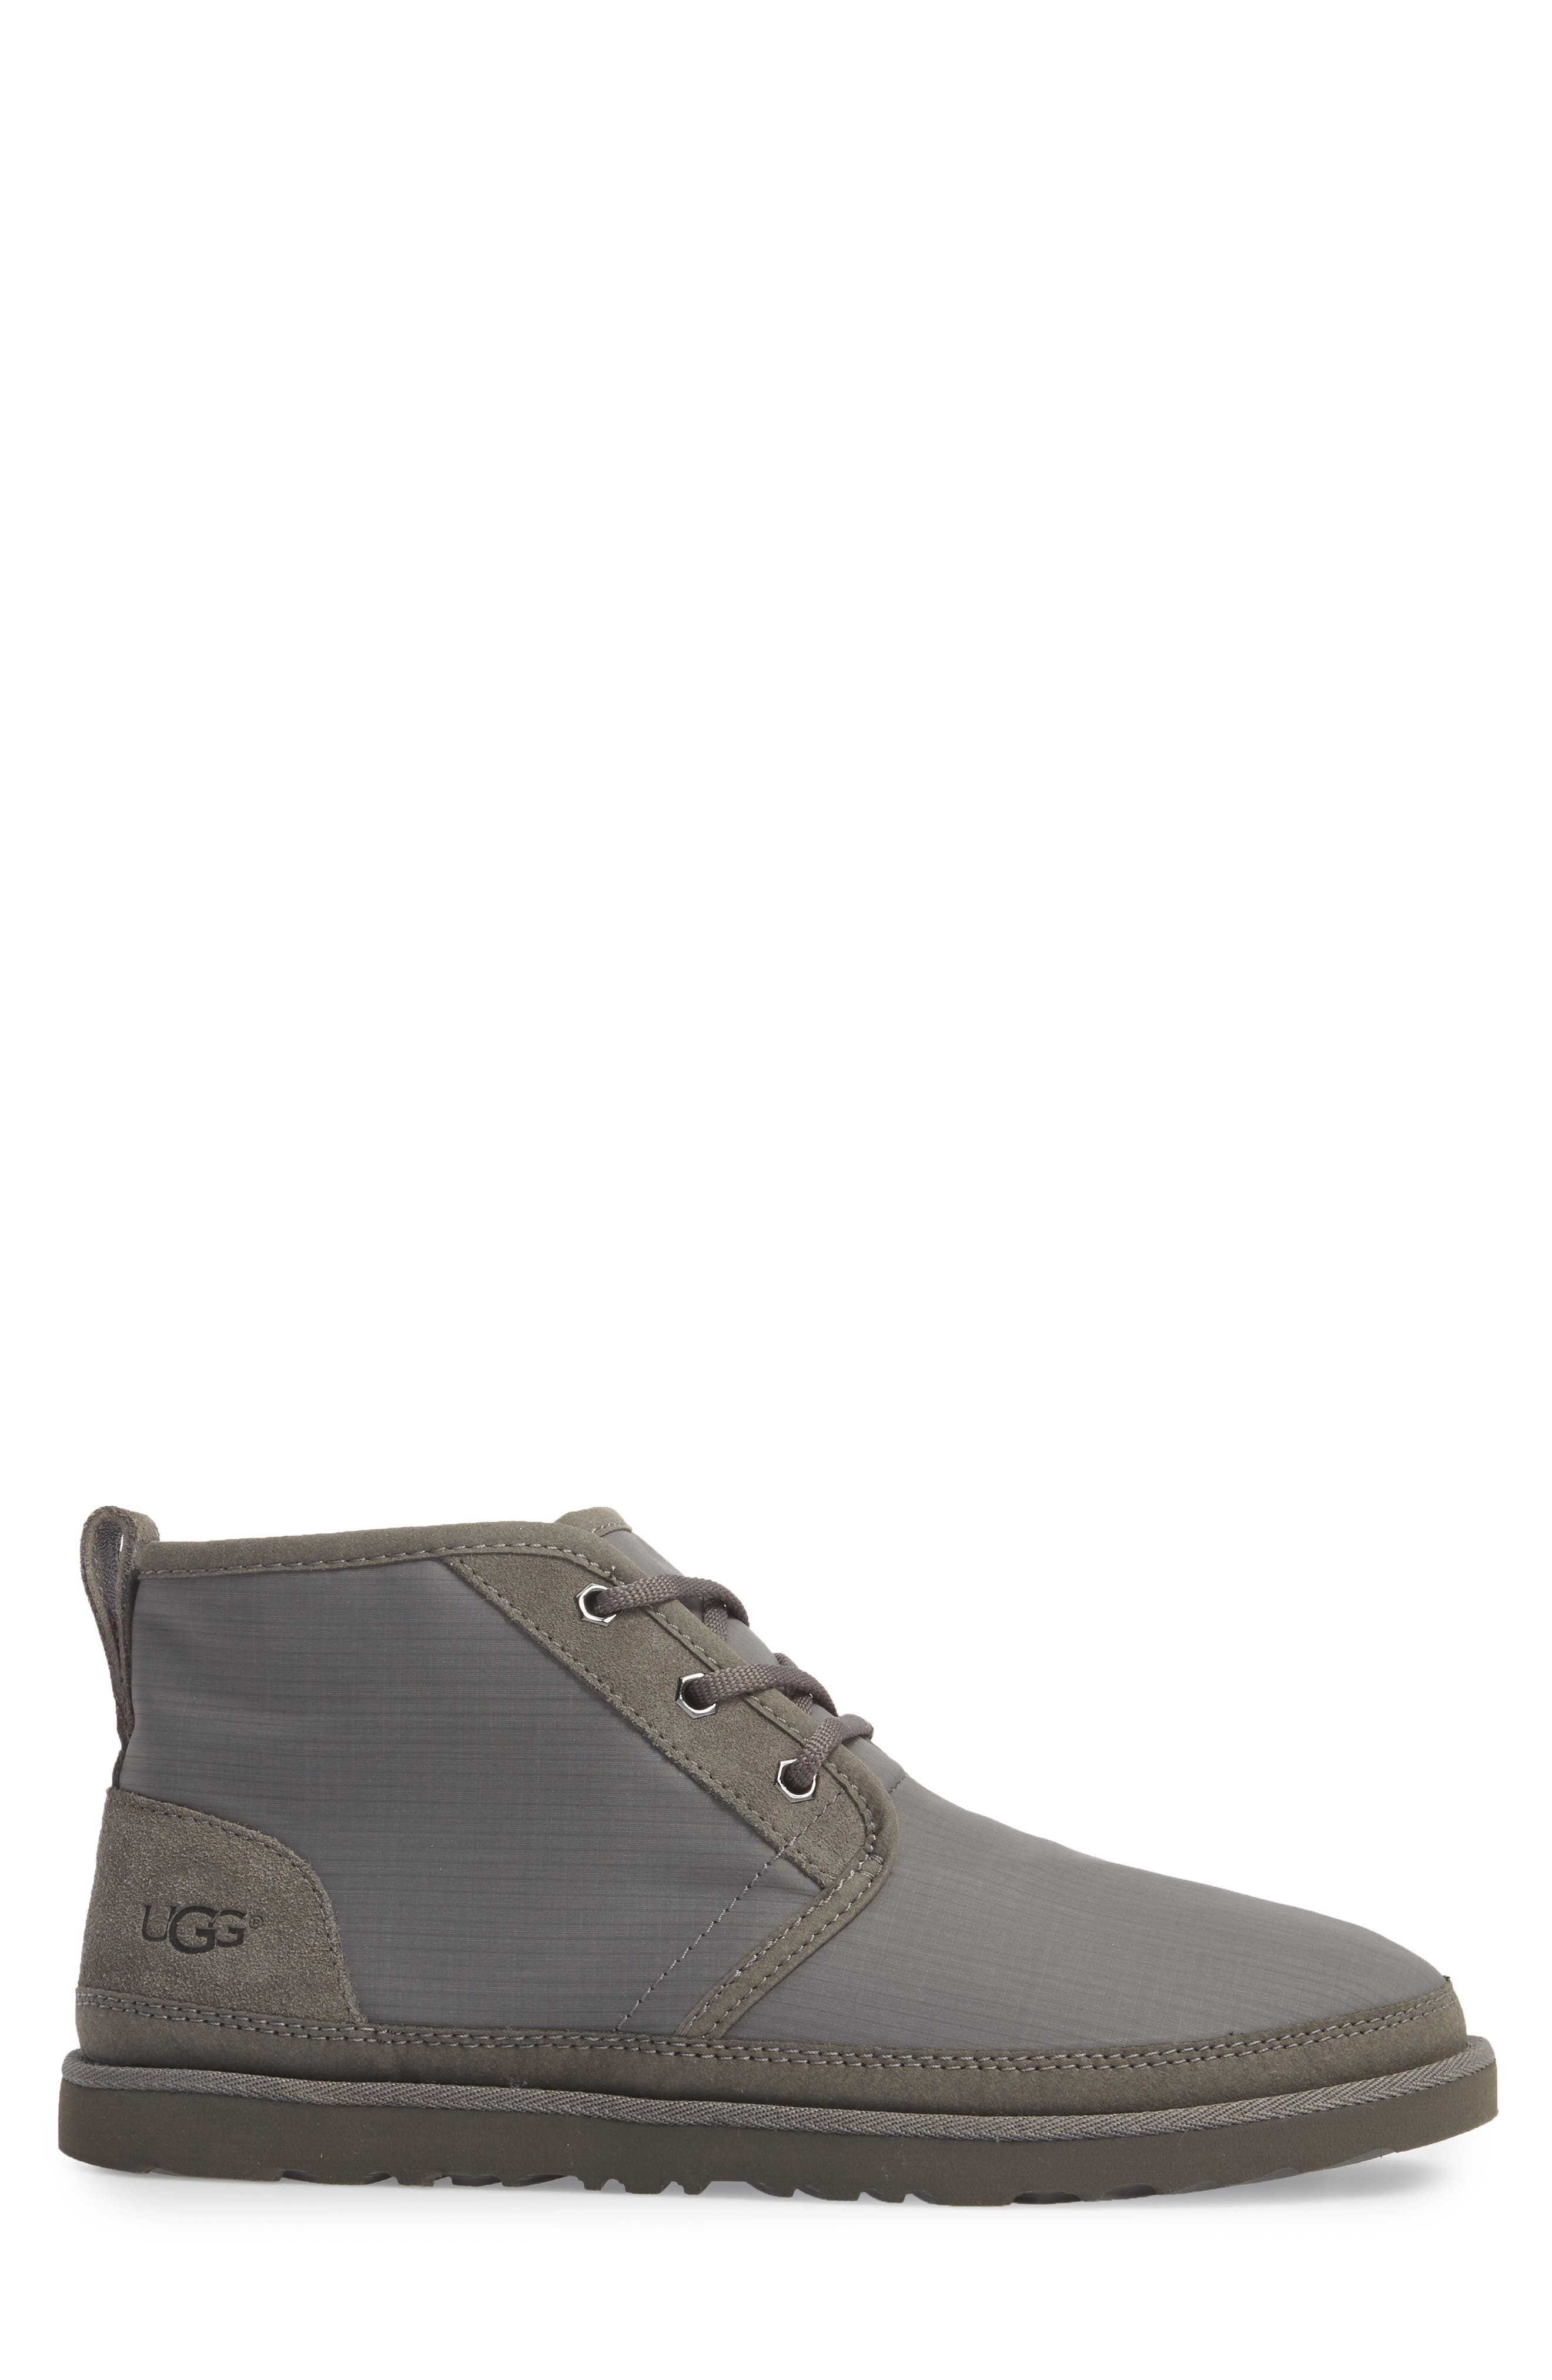 Neumel Ripstop Chukka Boot,                             Alternate thumbnail 3, color,                             CHARCOAL LEATHER